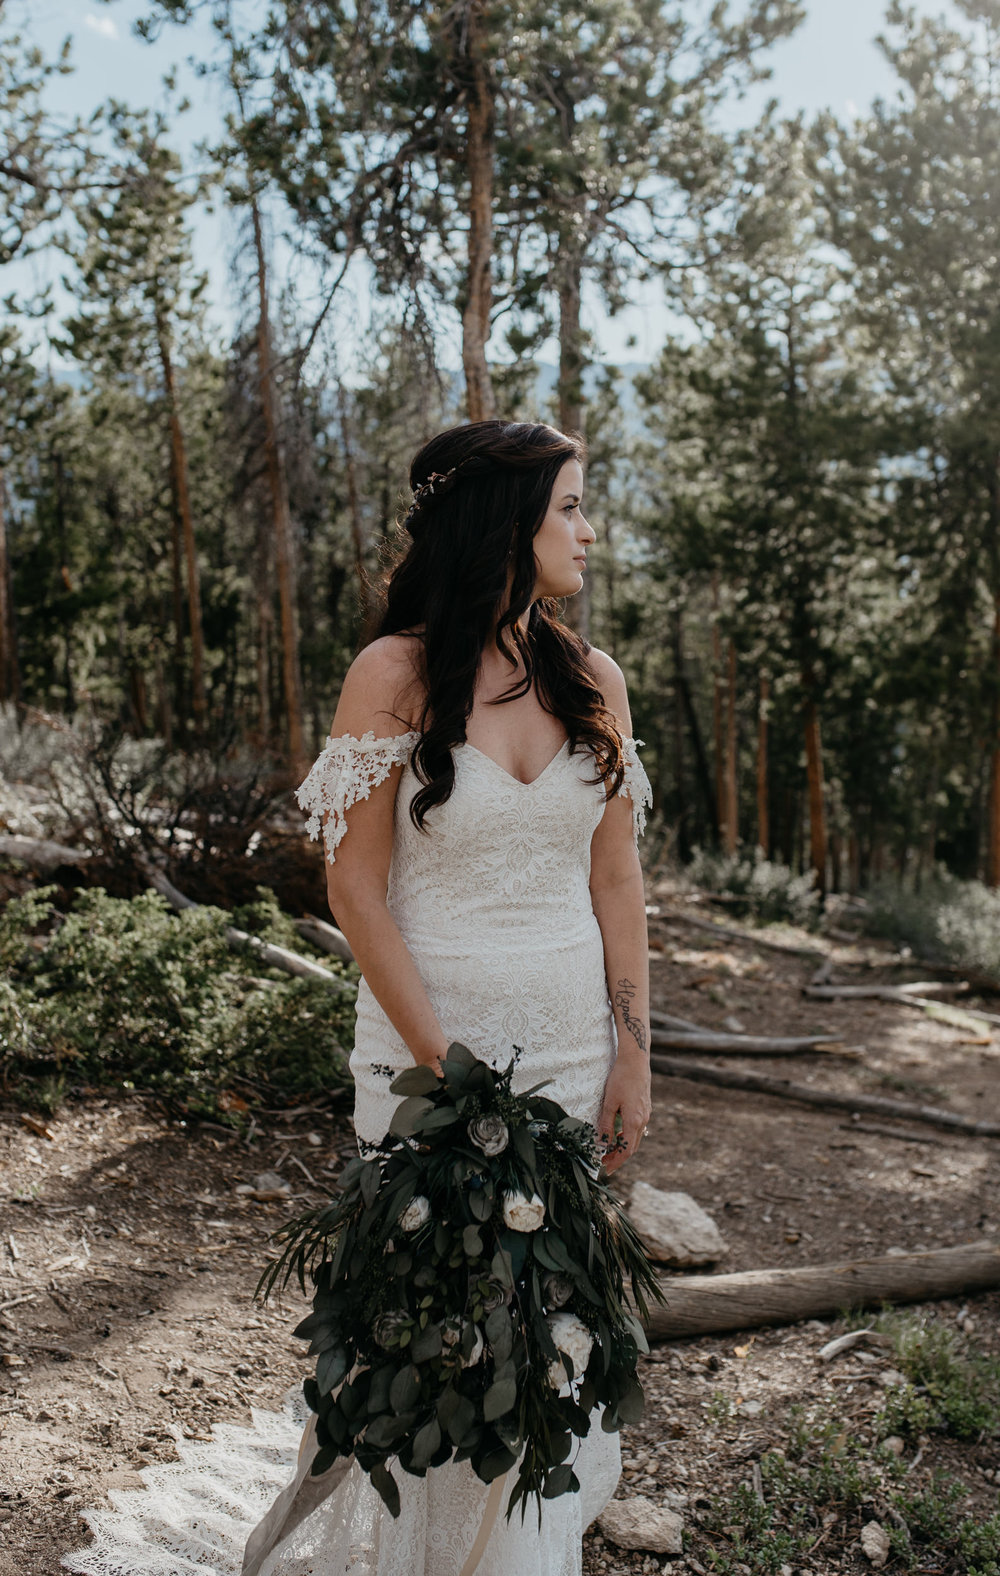 Colorado boho wedding photographer. Wedding at Sapphire Point in Breckenridge, CO.